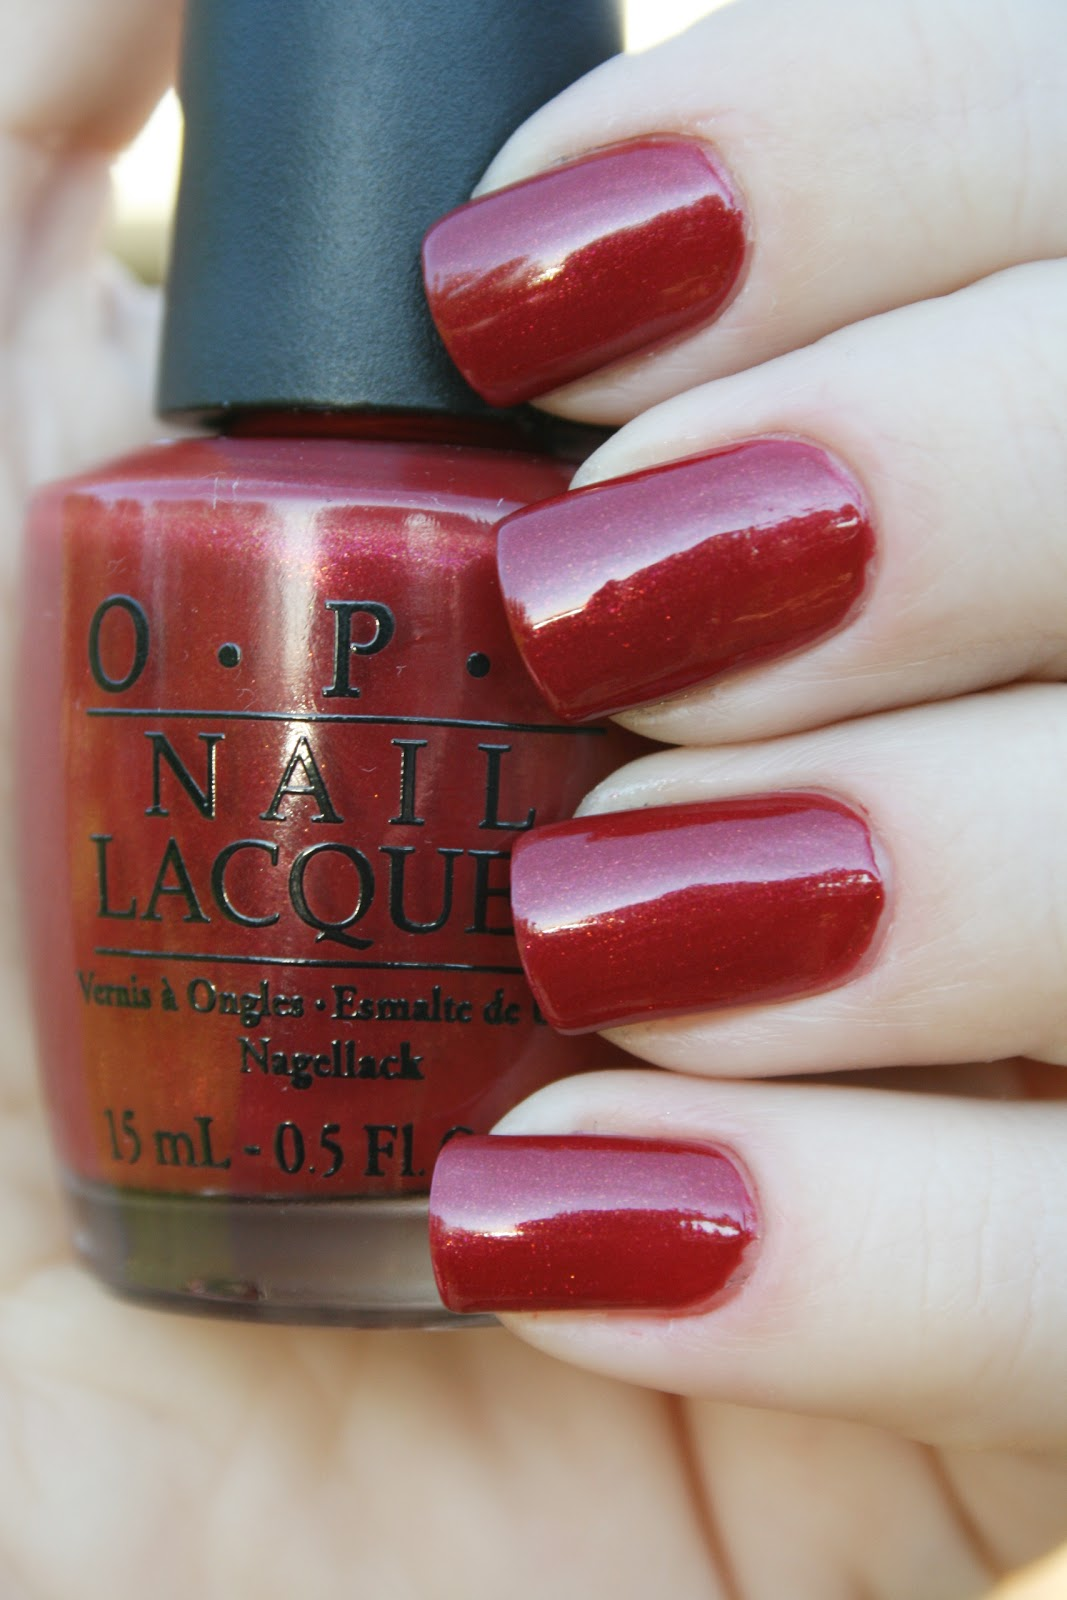 Opi Color To Diner For Nails by Catharina: OP...